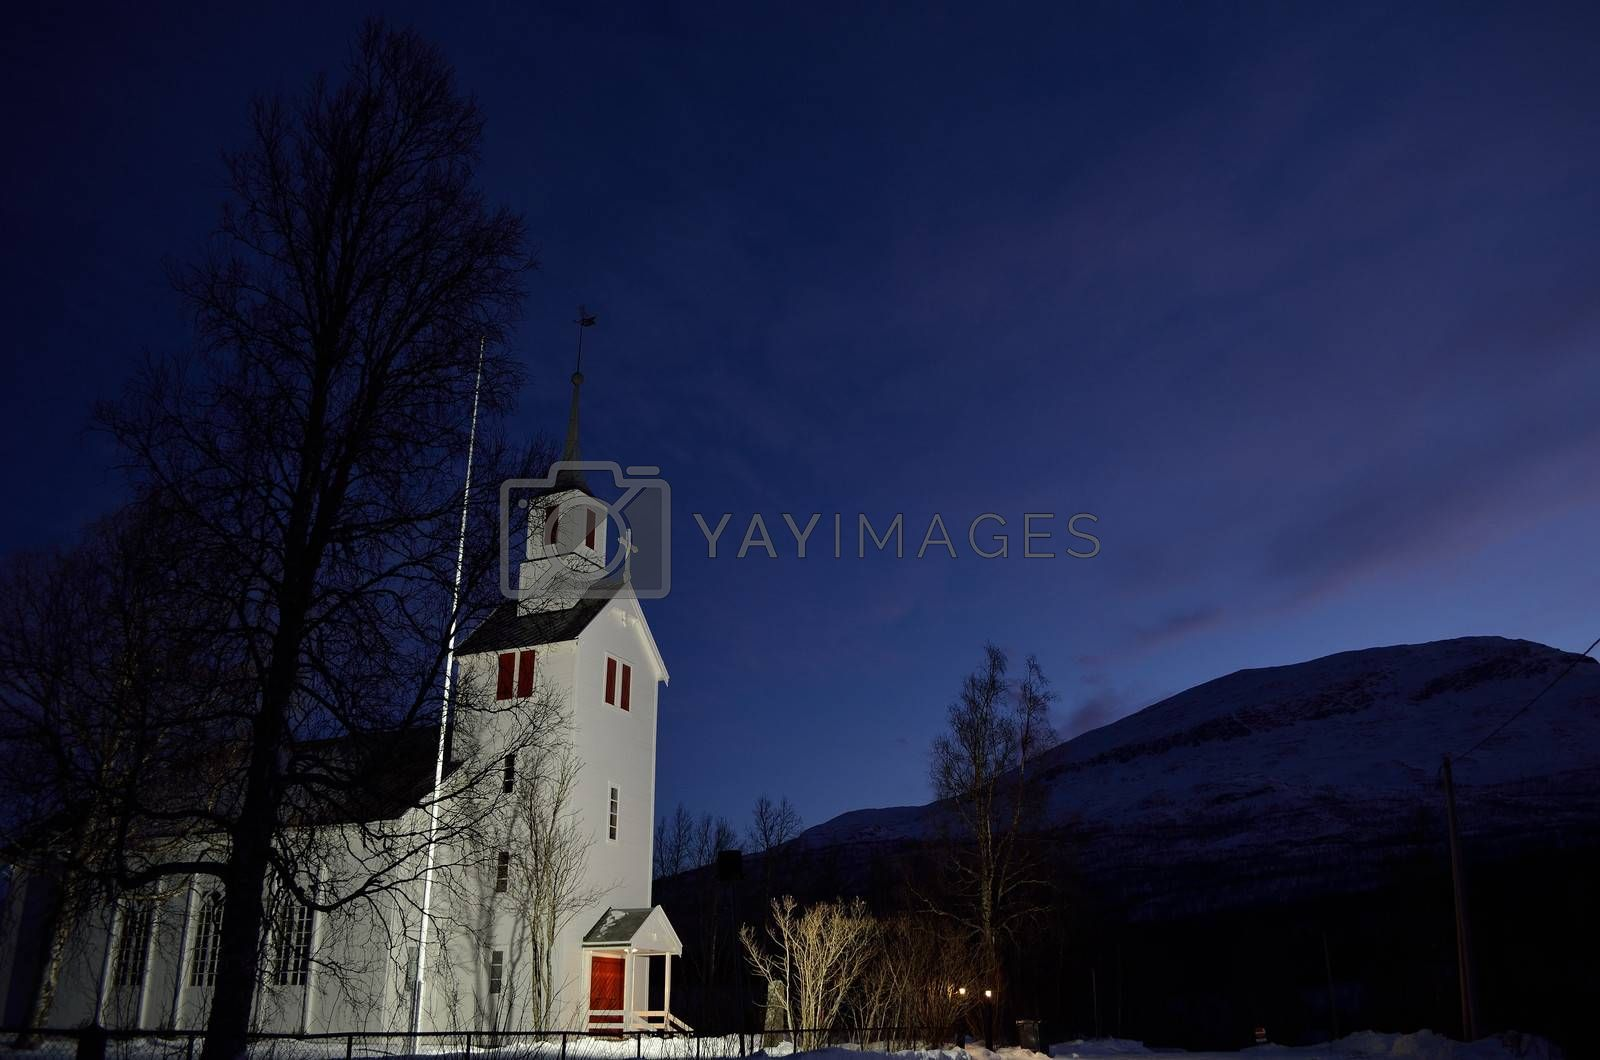 Royalty free image of beautiful old church located near overbygd in northern norway by Finephotoworks